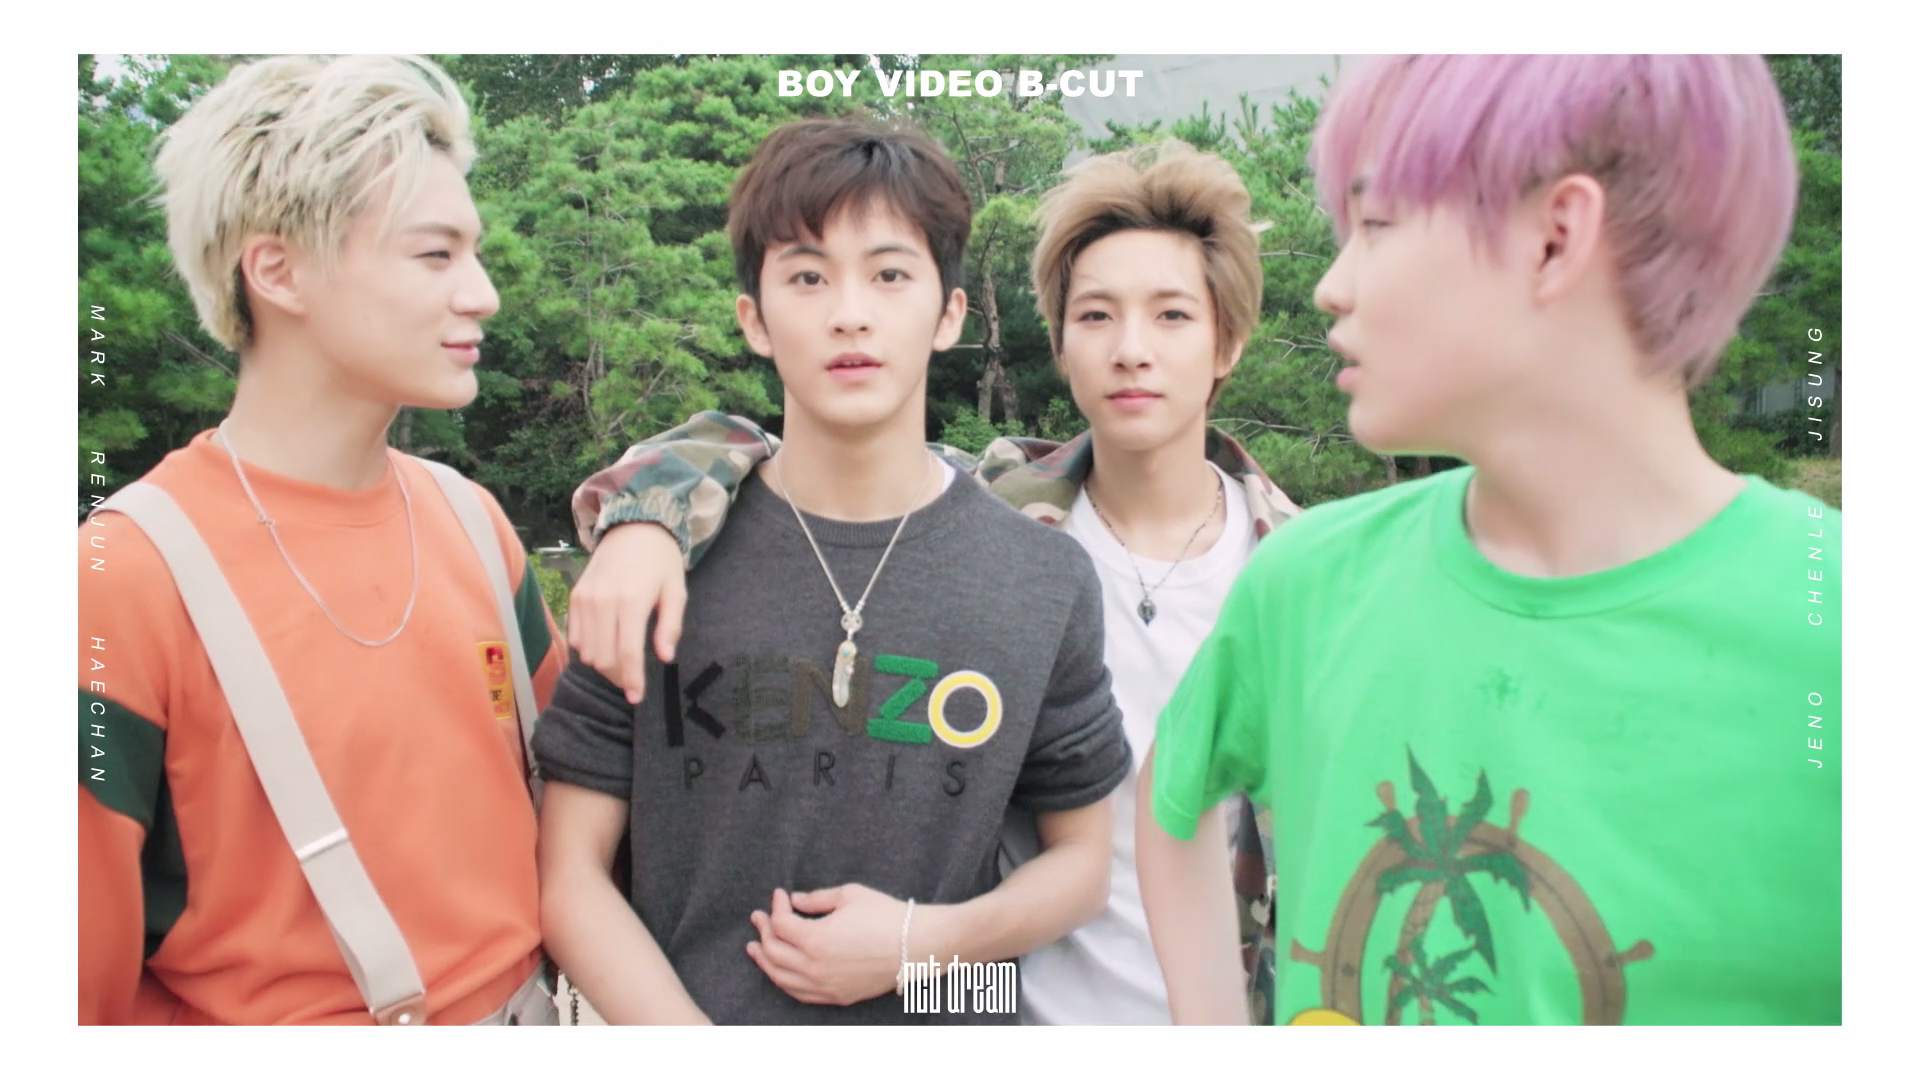 NCT DREAM BOY VIDEO B-CUT #2